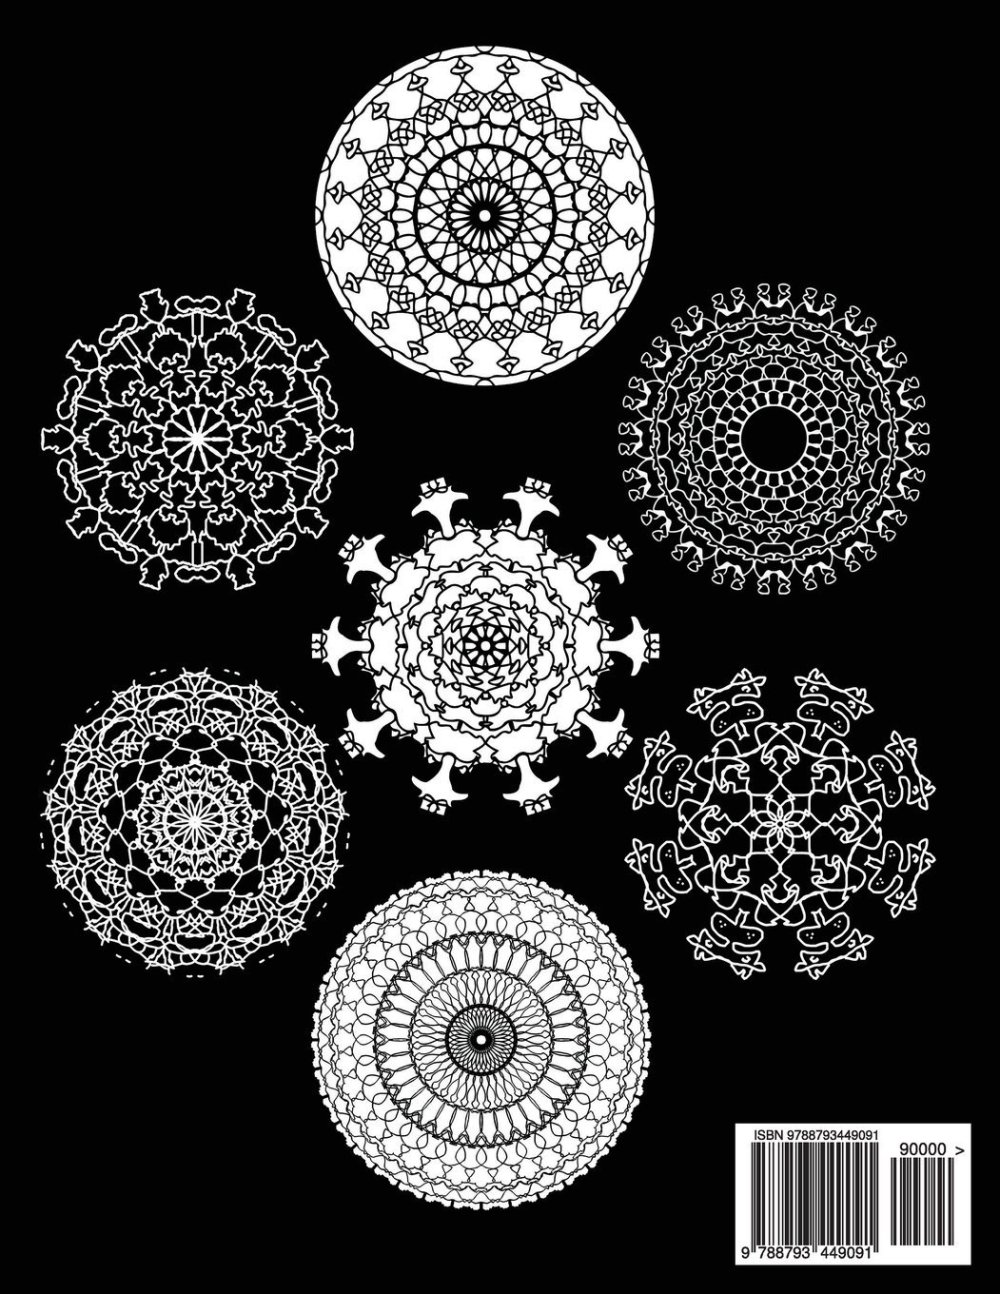 Midnight Mandala Fun Adult Coloring Book: Midnight mandala adult coloring books for relaxing fun with #cherylcolors #anniecolors #angelacolorz (Midnight Fun Mandalas) (Volume 1) Paperback – May 8, 2016 by Cheryl Colors (Author), Annie Colors (Author), Angela Colors (Author), Global Doodle Gems (Author)